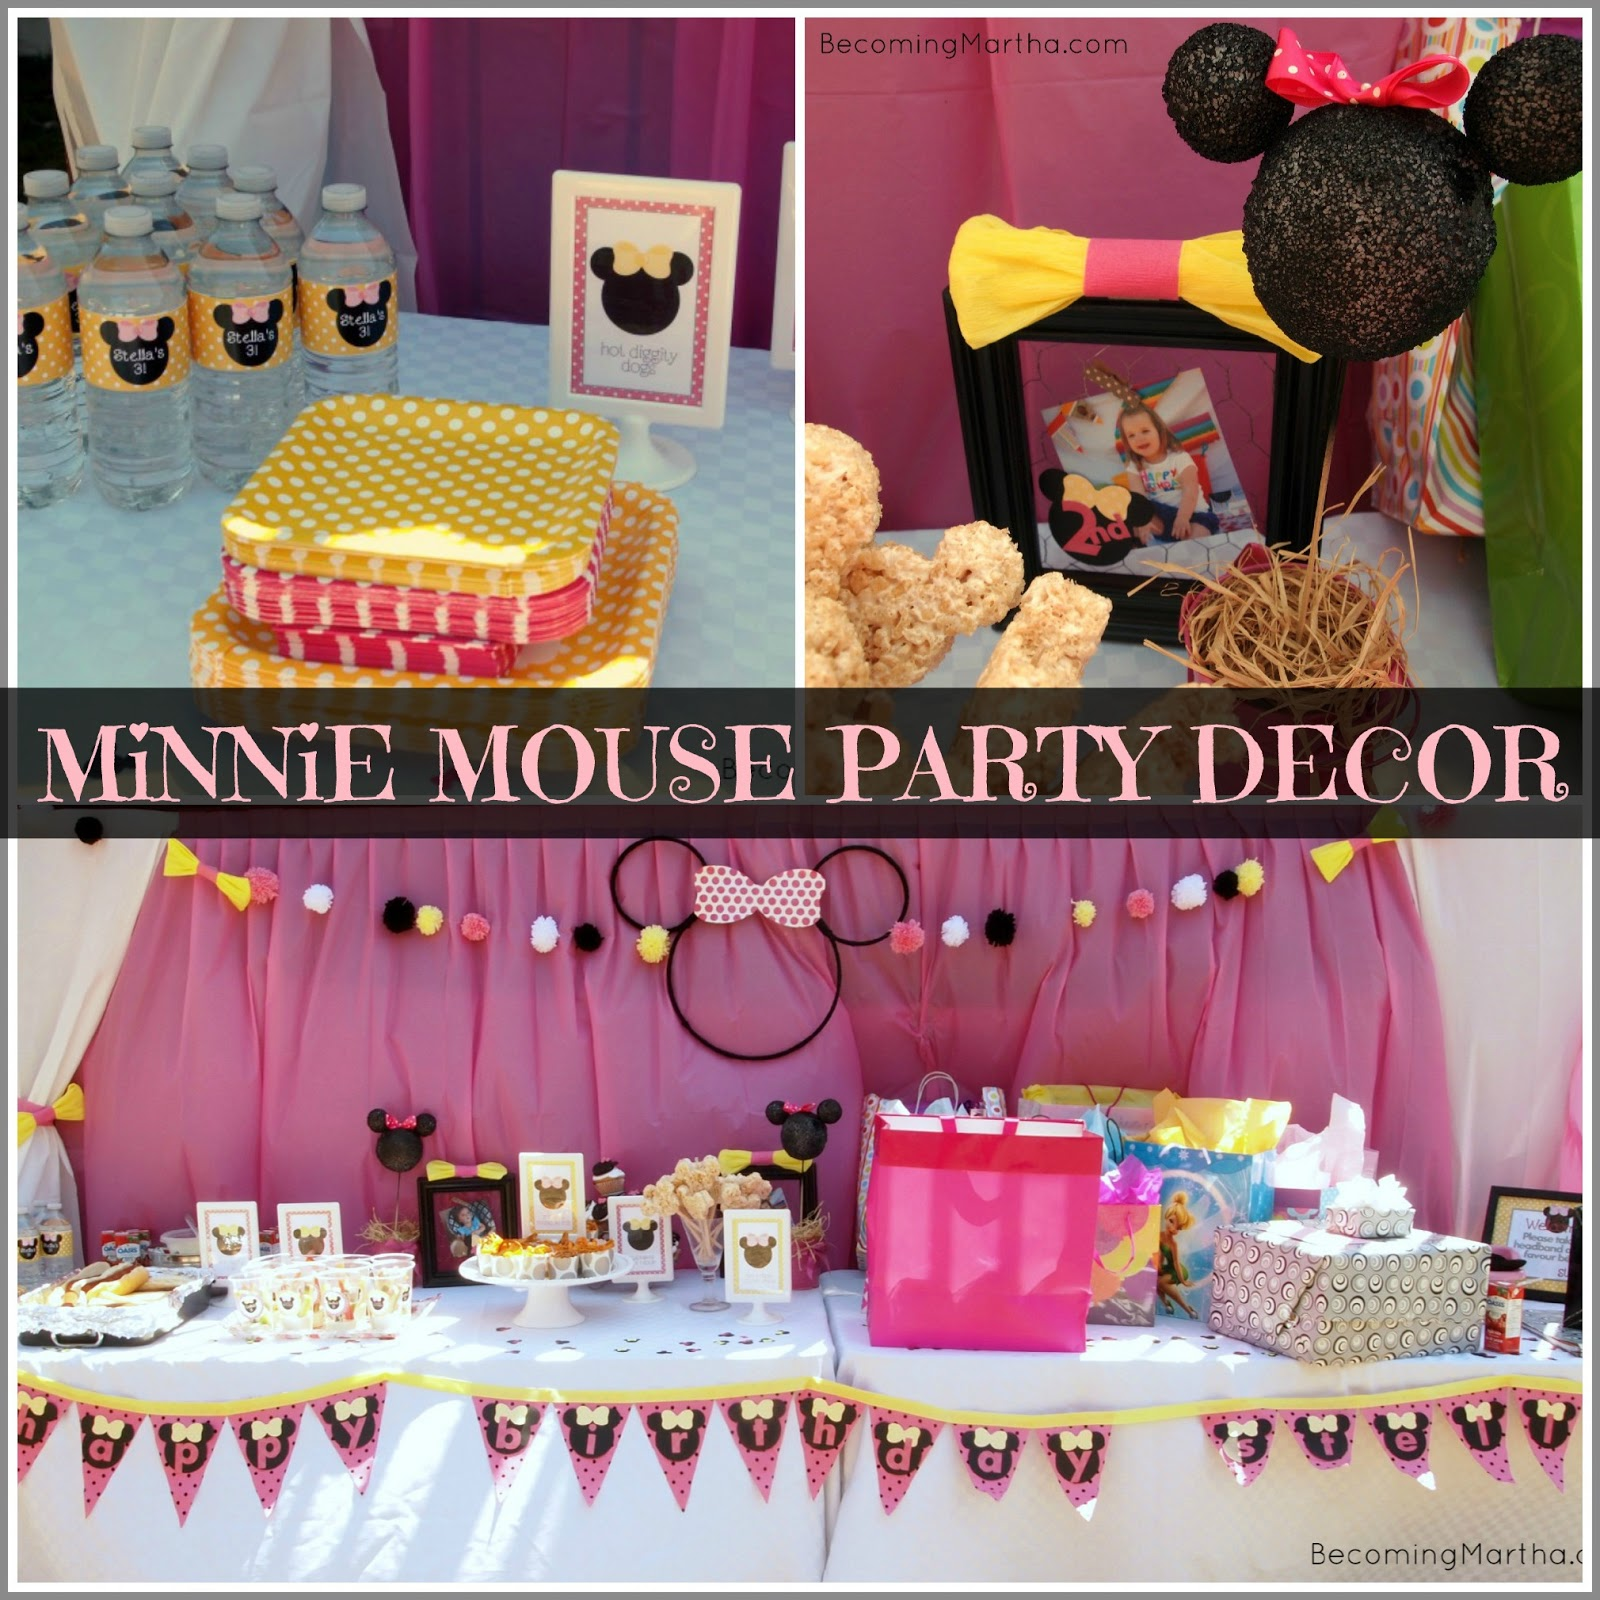 Minnie Mouse Party Decor - Becoming Martha